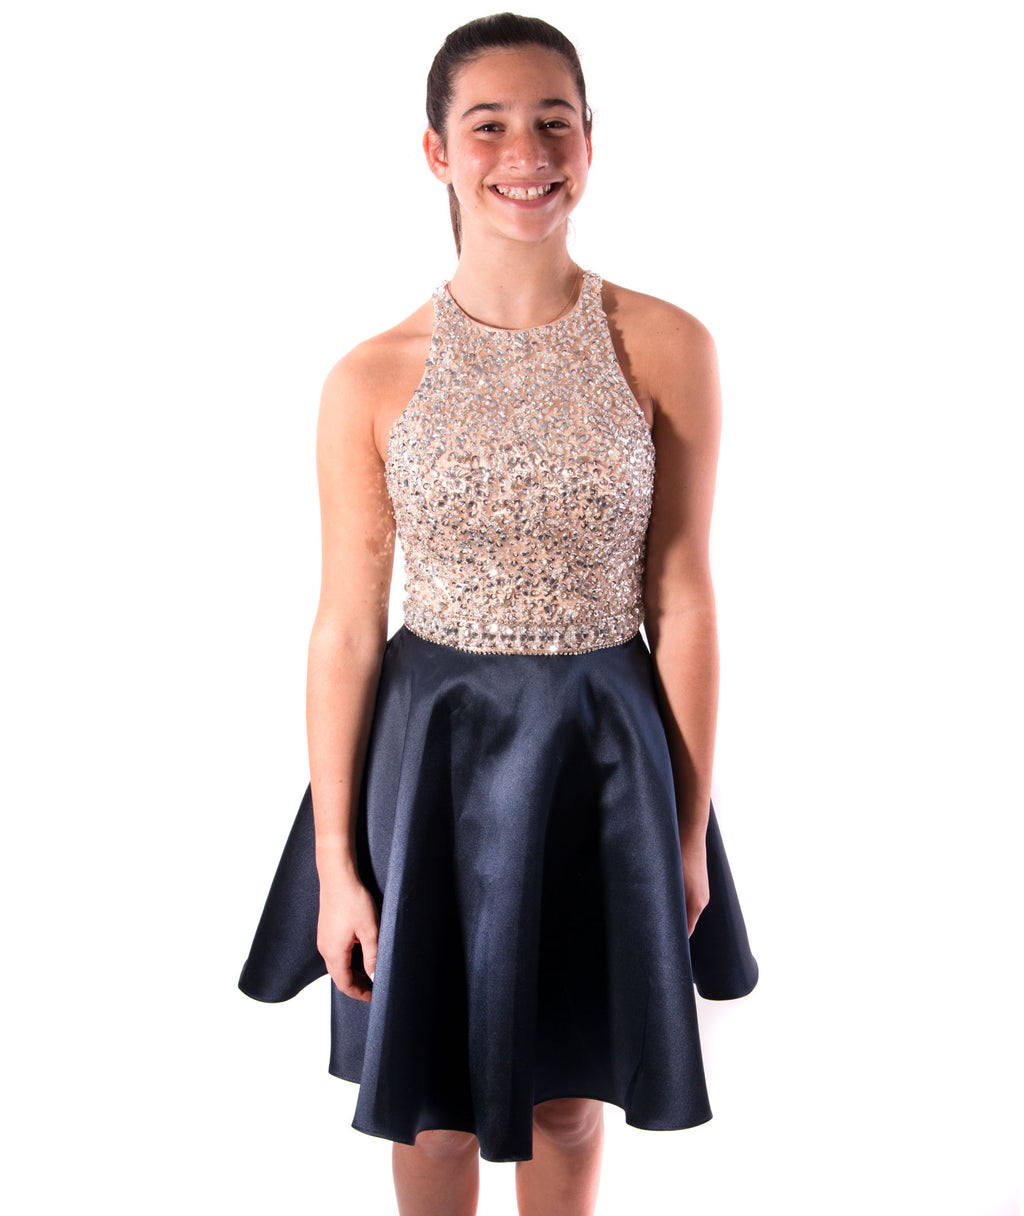 Jovani Girls Beige Beaded Top and Navy Skirt Party Dress - Frankie's on the Park